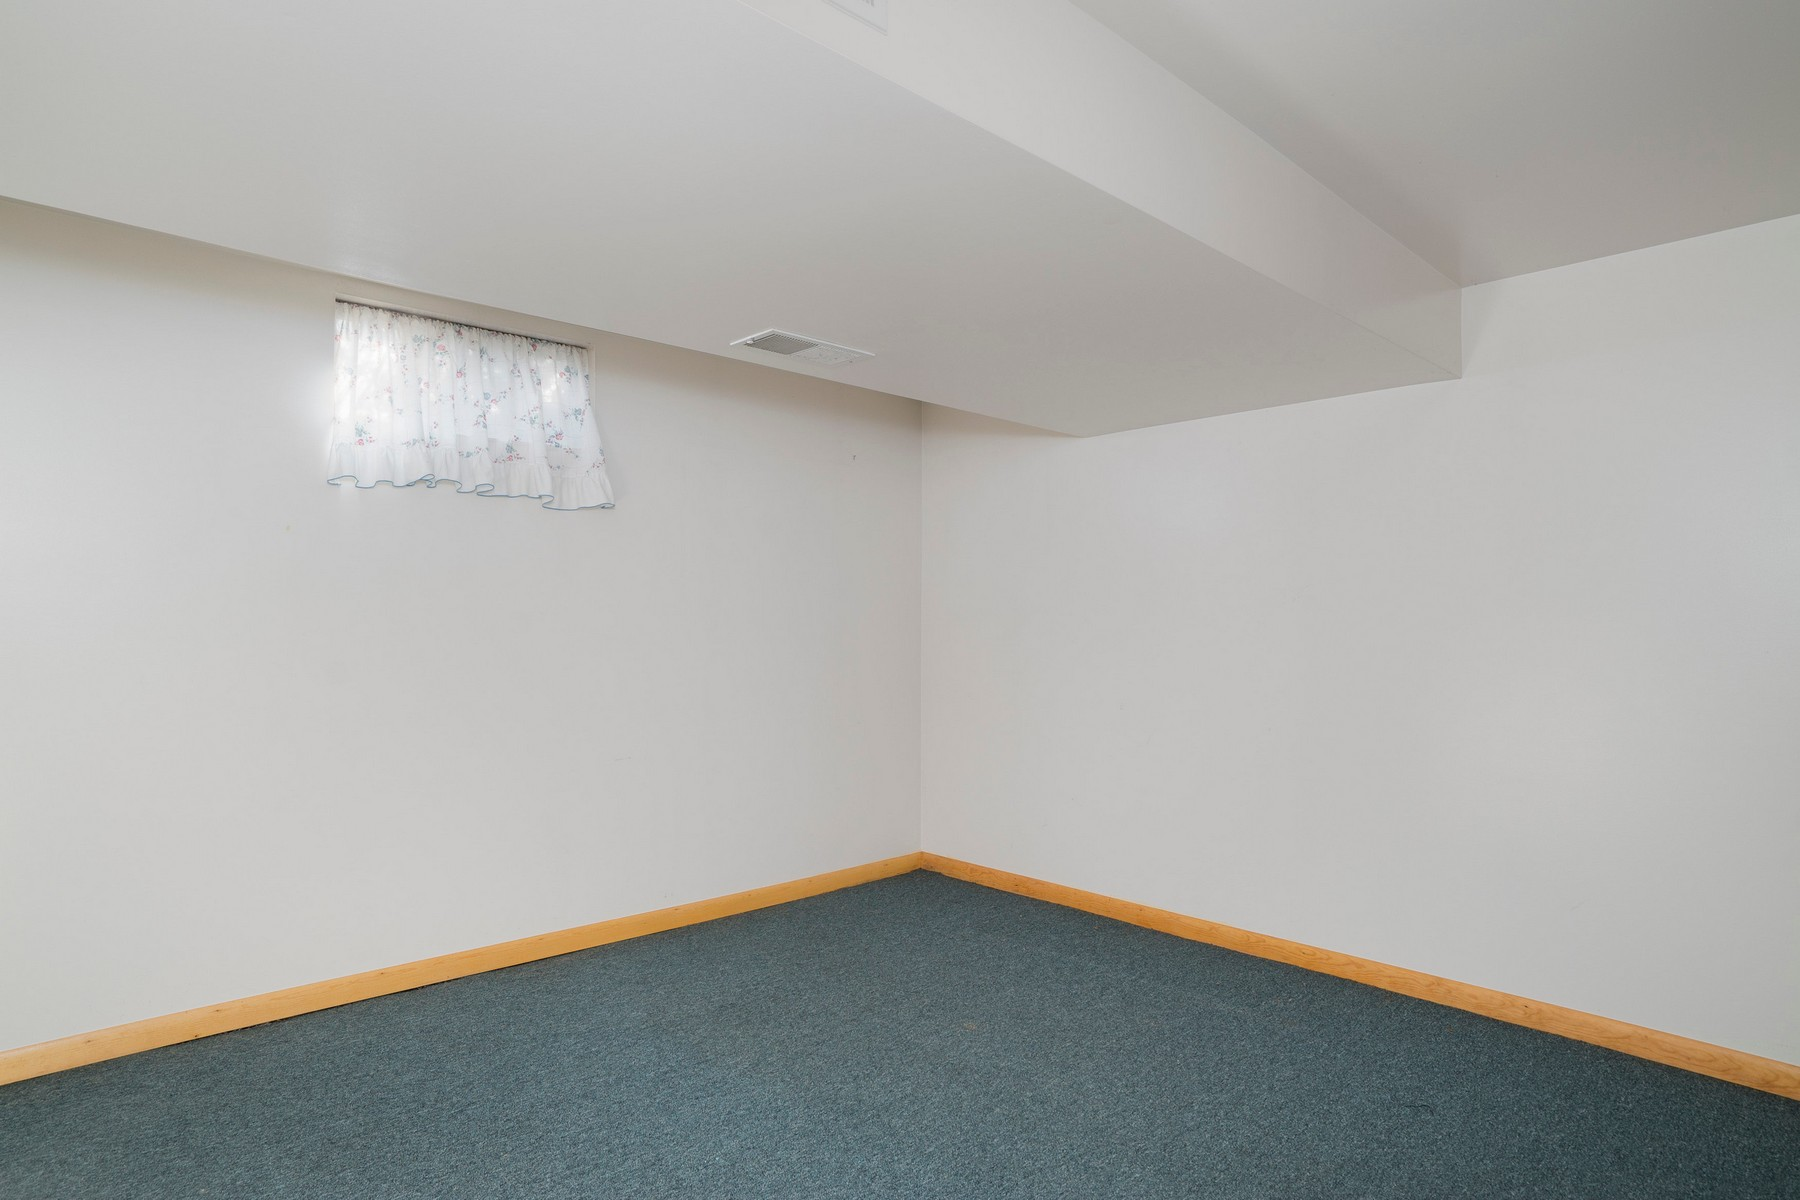 Additional photo for property listing at GiGi's Home 974  Lawrence Ave Aurora, New York 14052 États-Unis